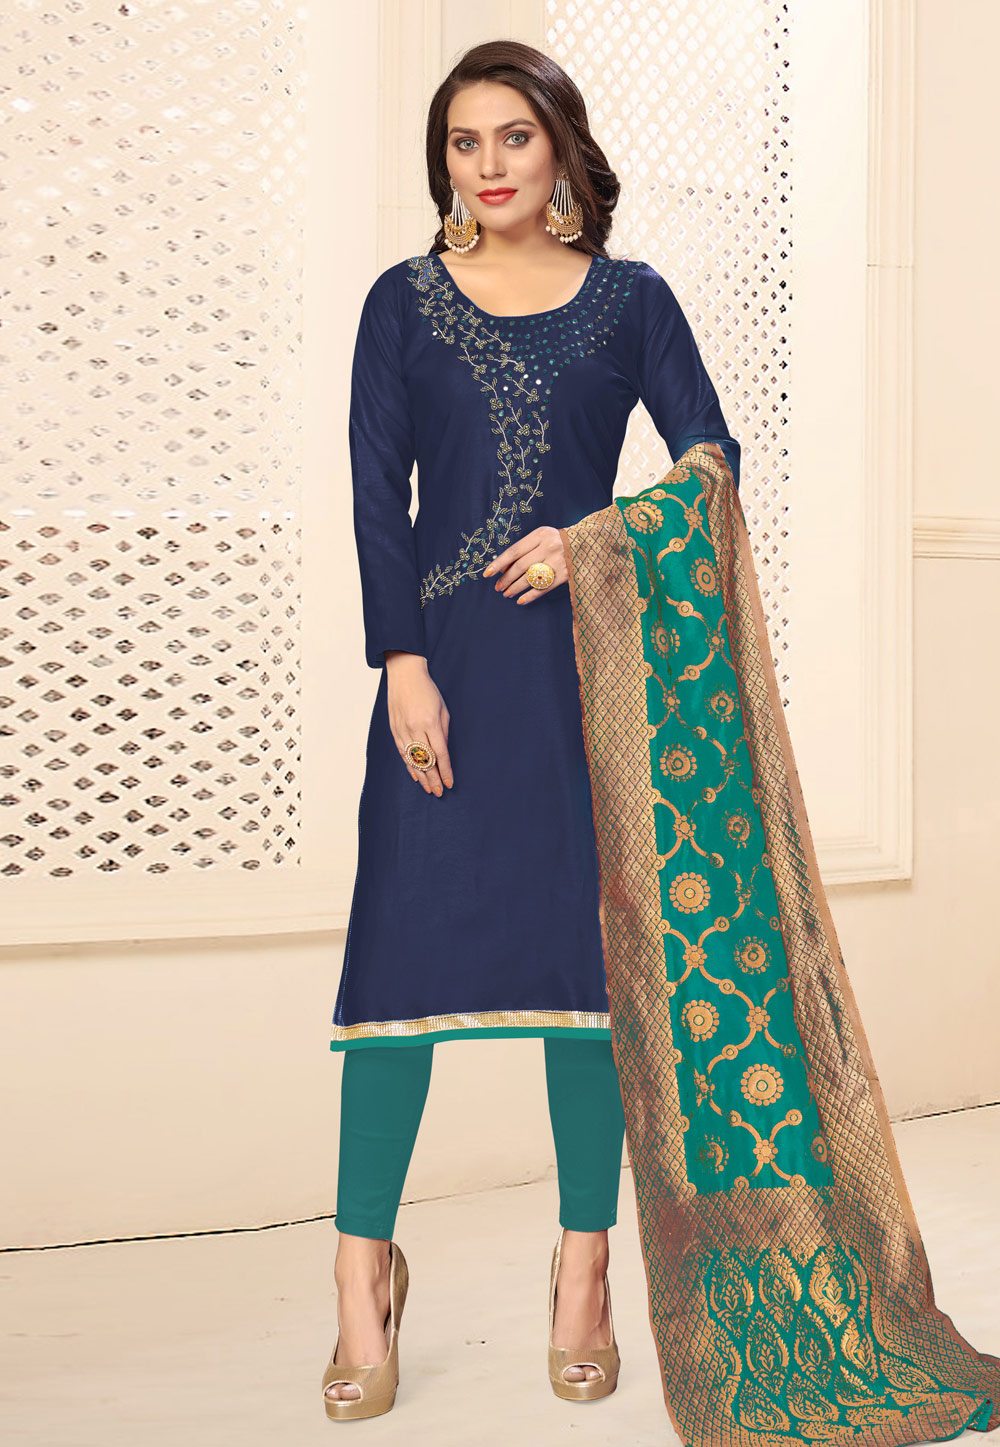 Navy Blue Cotton Kameez With Pant 201859